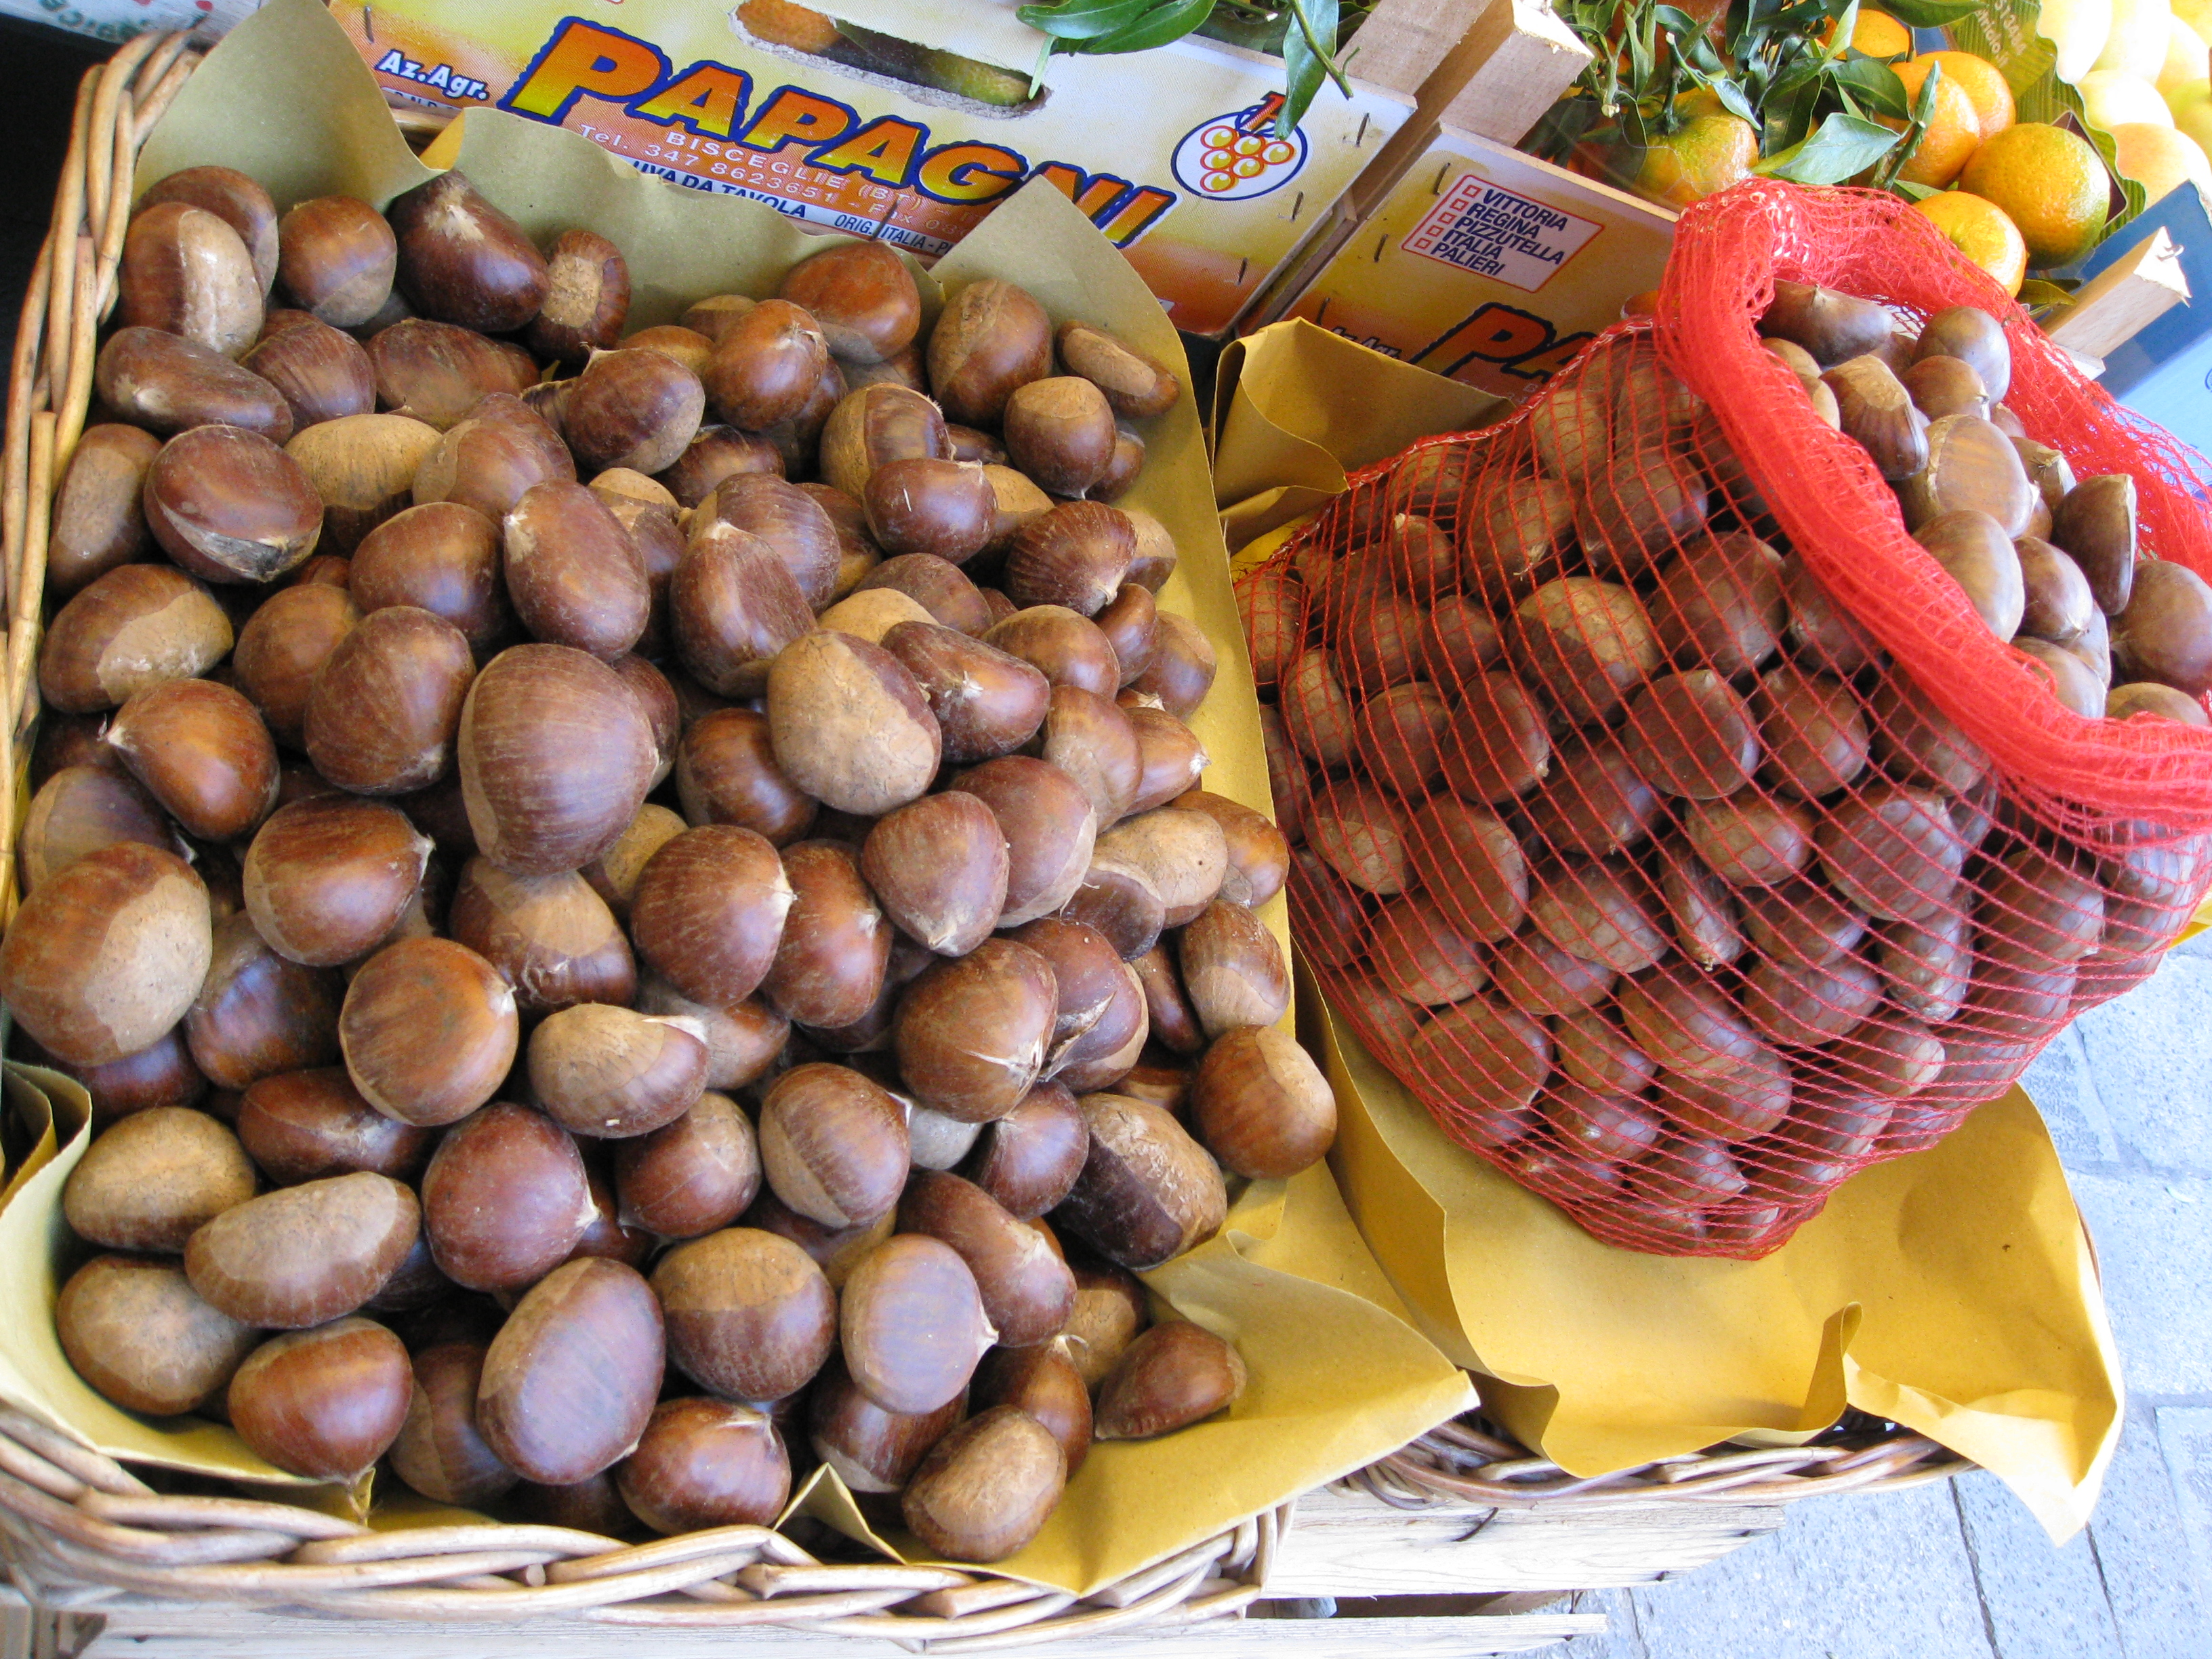 Chestnuts are a big tradition in Europe in fall. Street vendors roast them in makeshift stoves (usually made from trash can lids).